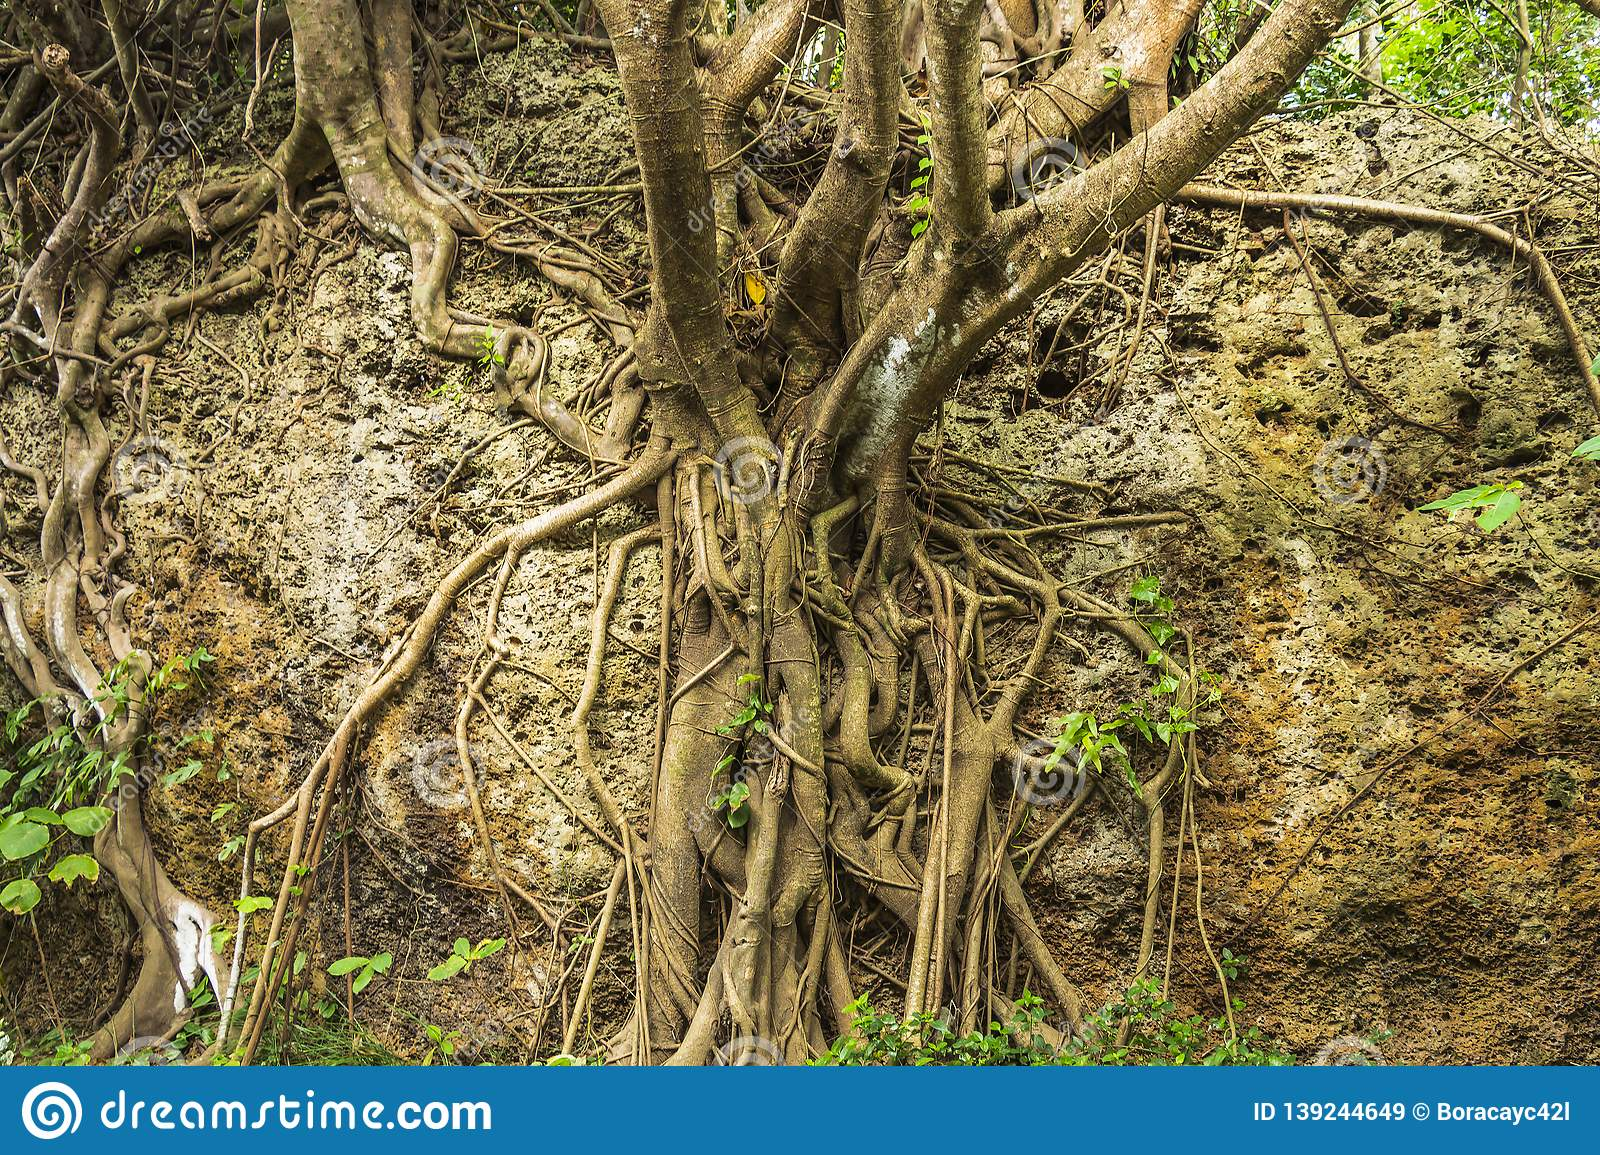 Roots and extensive branching of the Banyan tree at Eluanbi Park, Kenting National Park